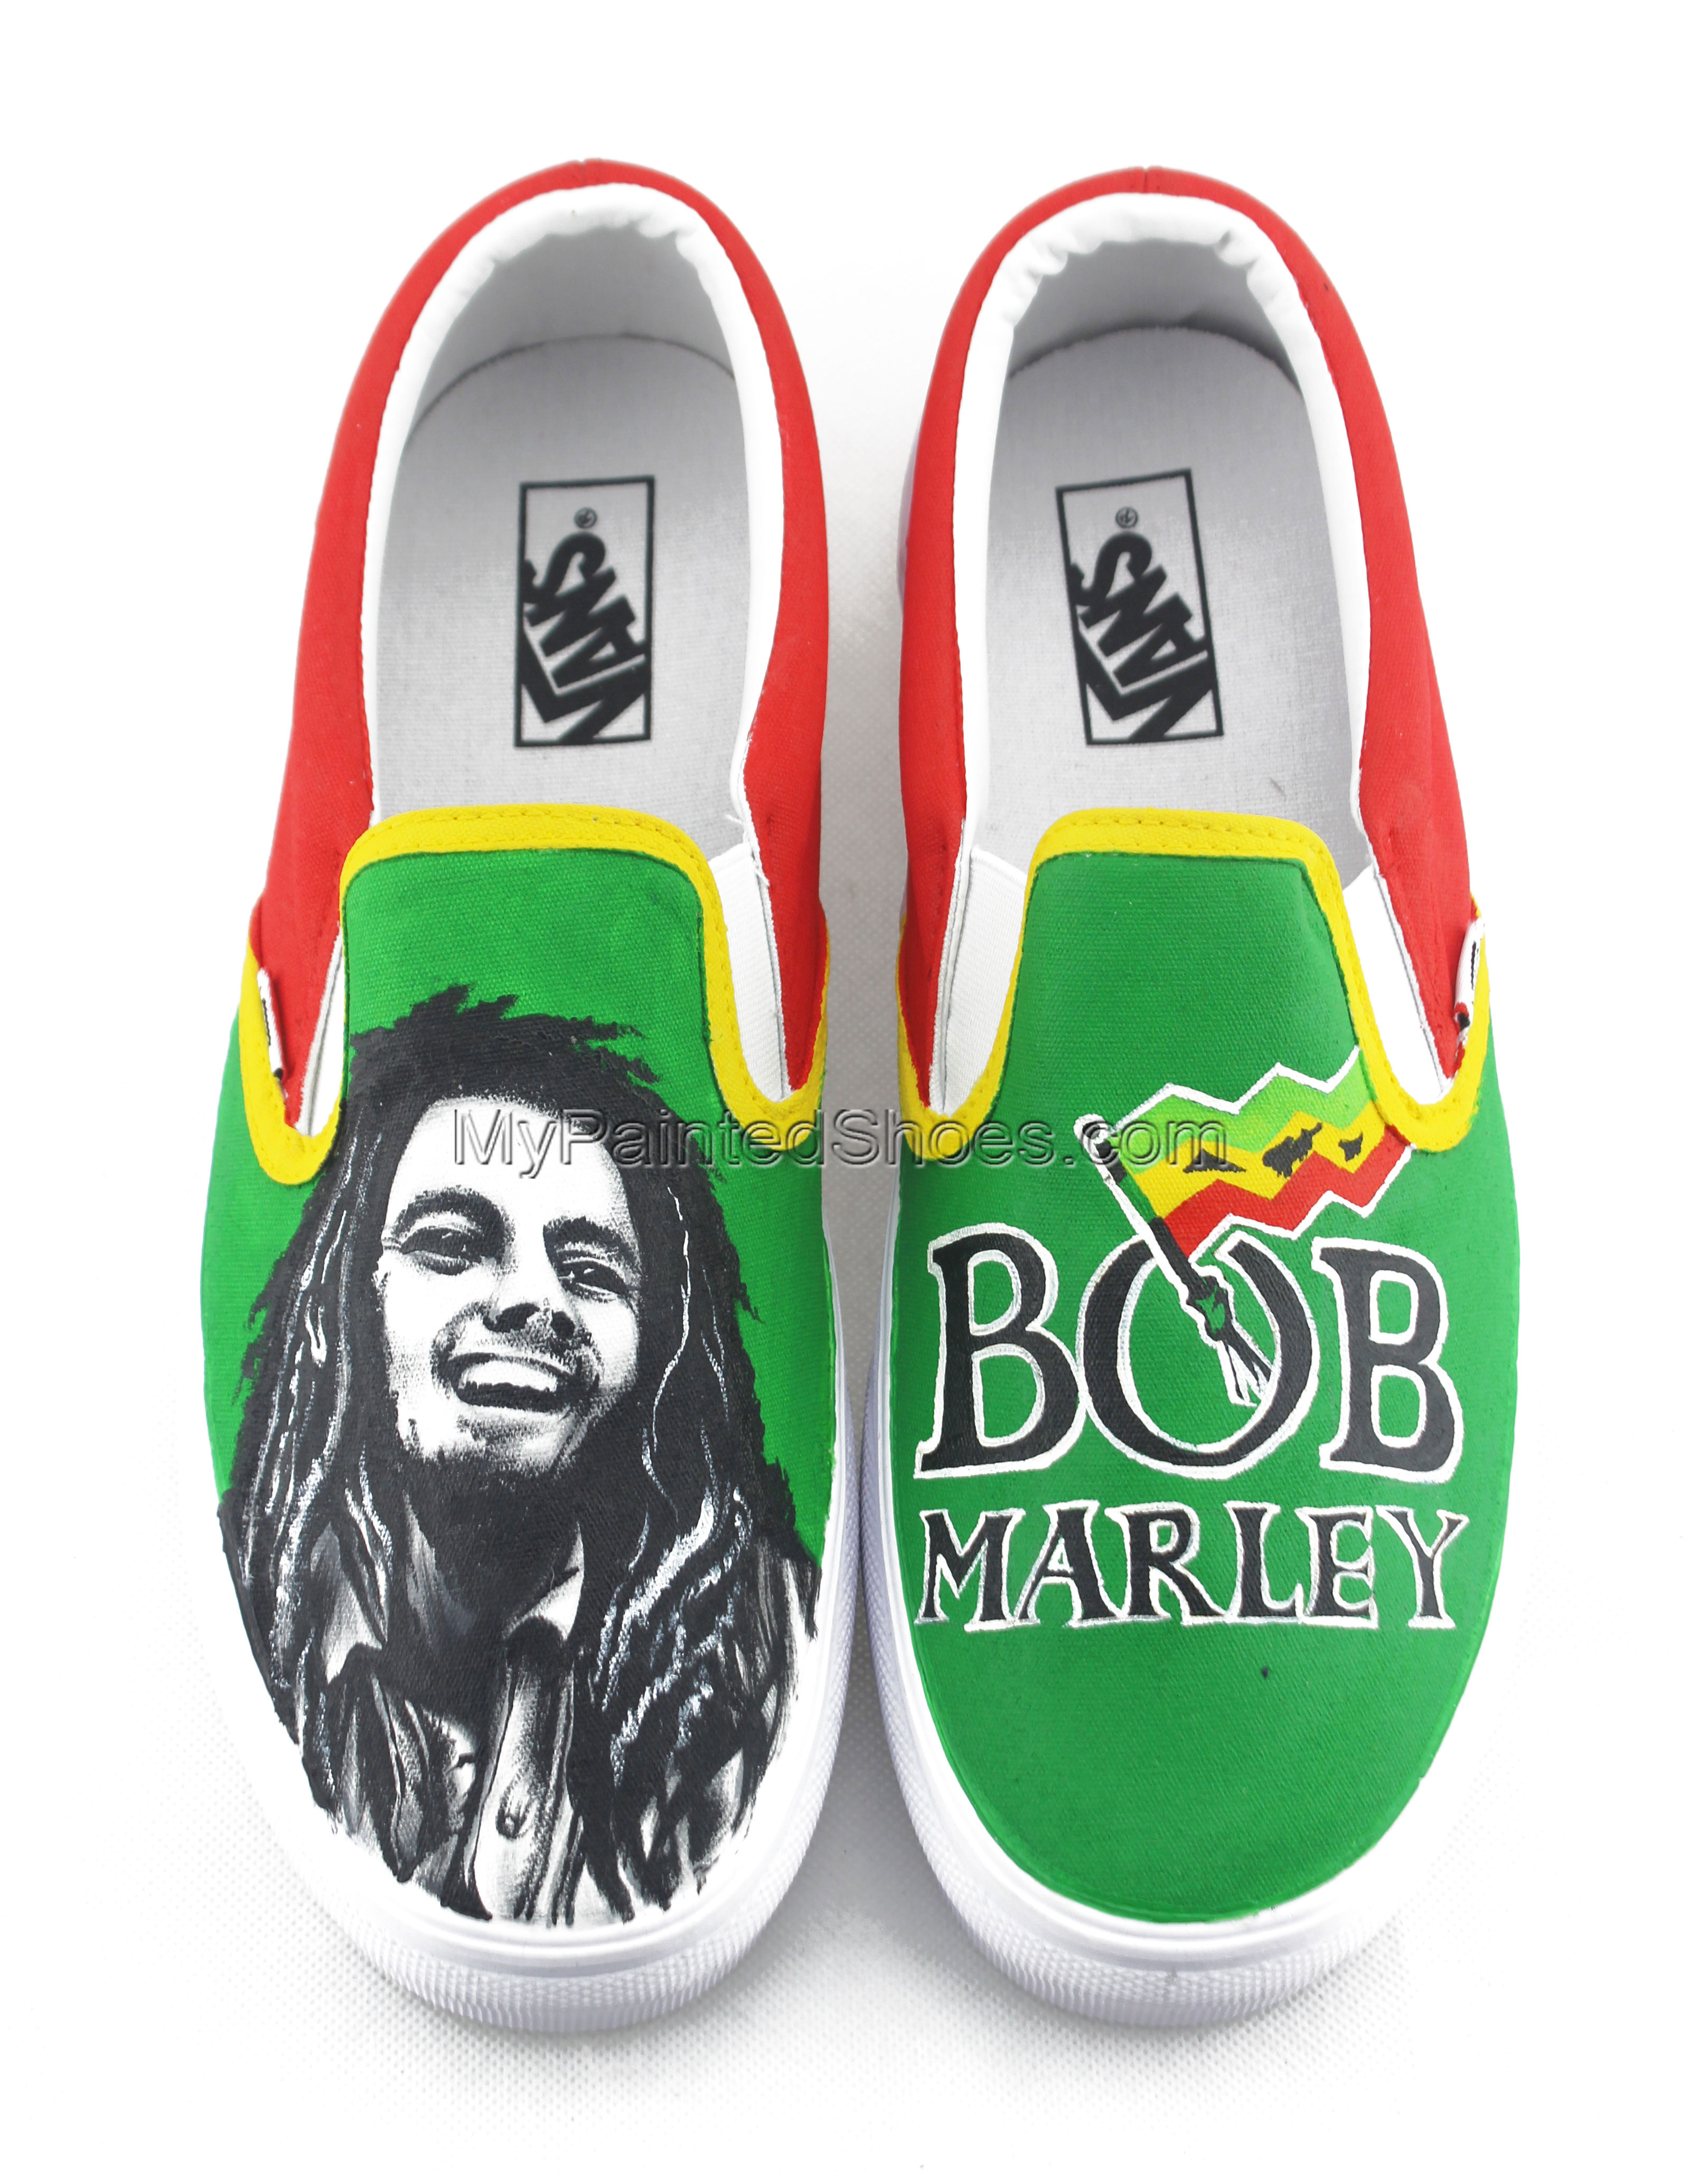 Vans Custom Sneakers Bob Marley Painted Shoes-2